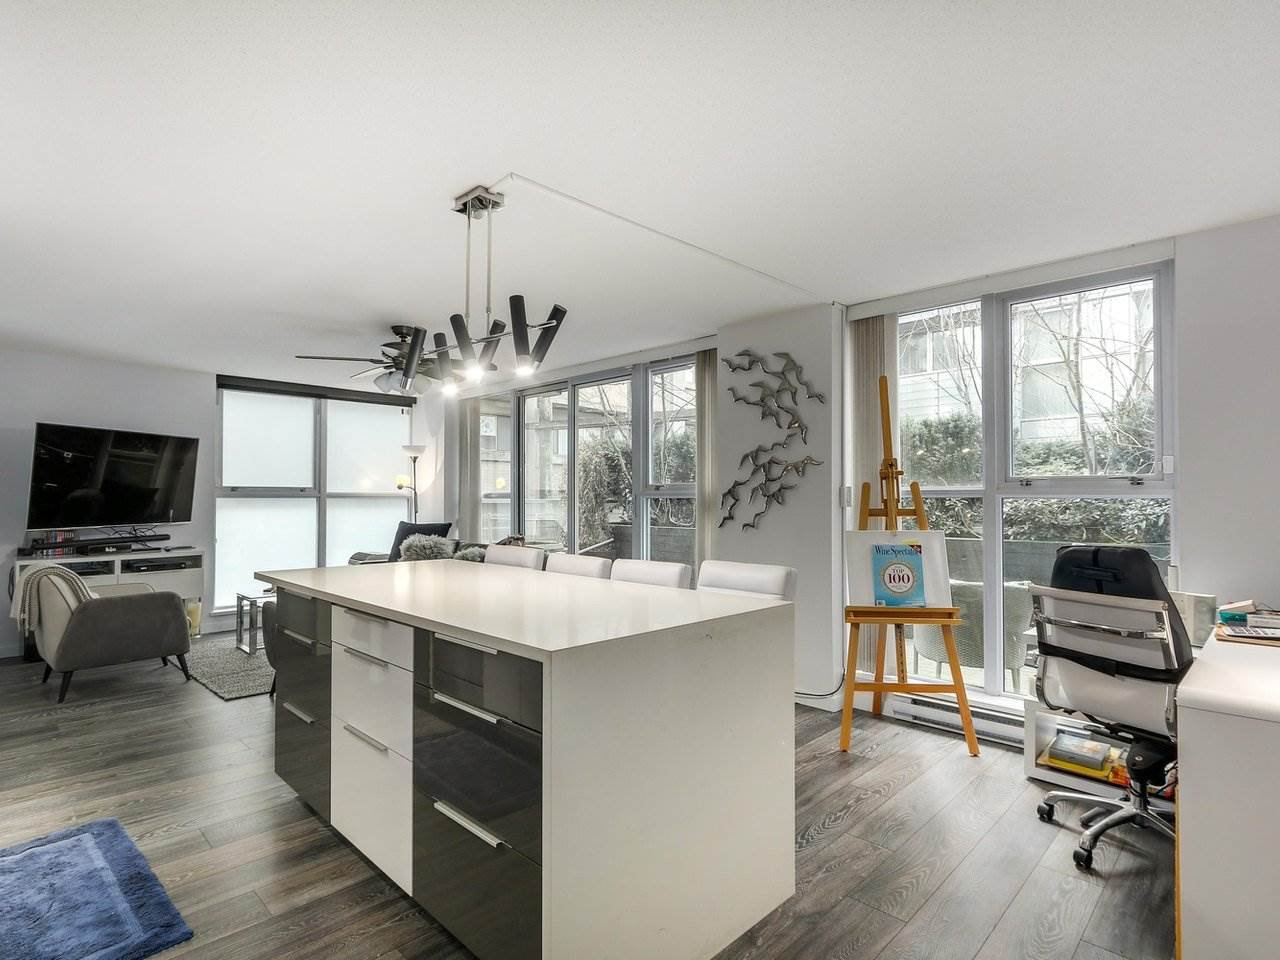 Photo 2: Photos: 217 168 POWELL Street in Vancouver: Downtown VE Condo for sale (Vancouver East)  : MLS®# R2386644